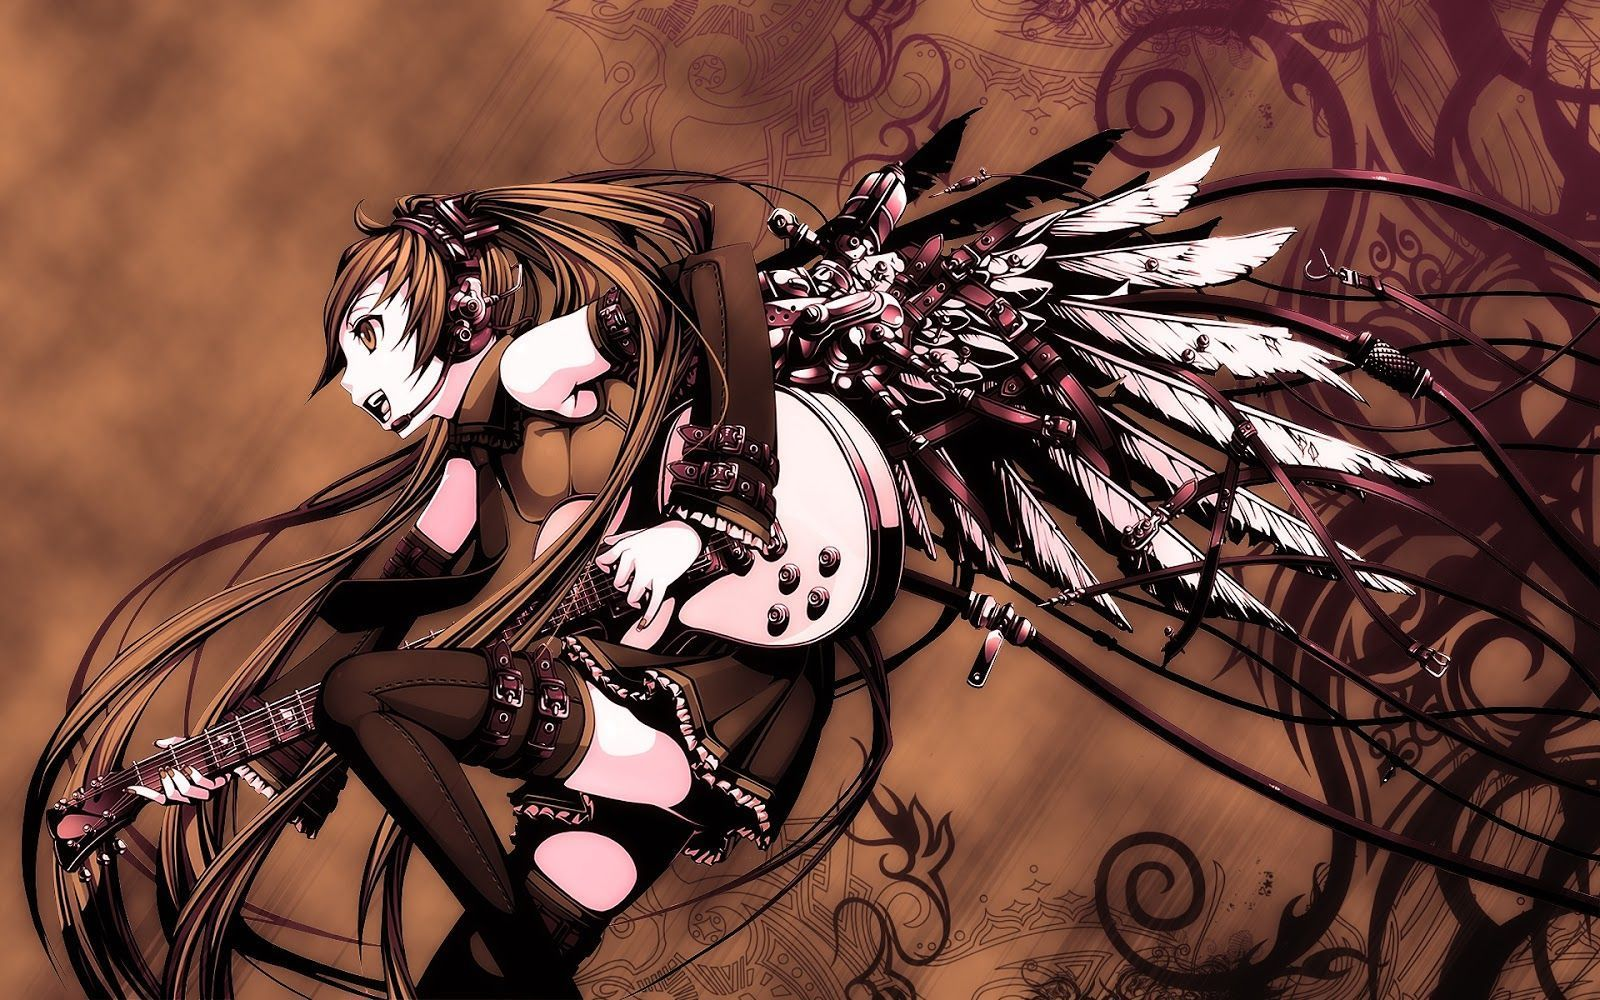 Epic-Anime-1920%C3%971080-Epic-Anime-Adorable-Wallpa-wallpaper-wp3405248